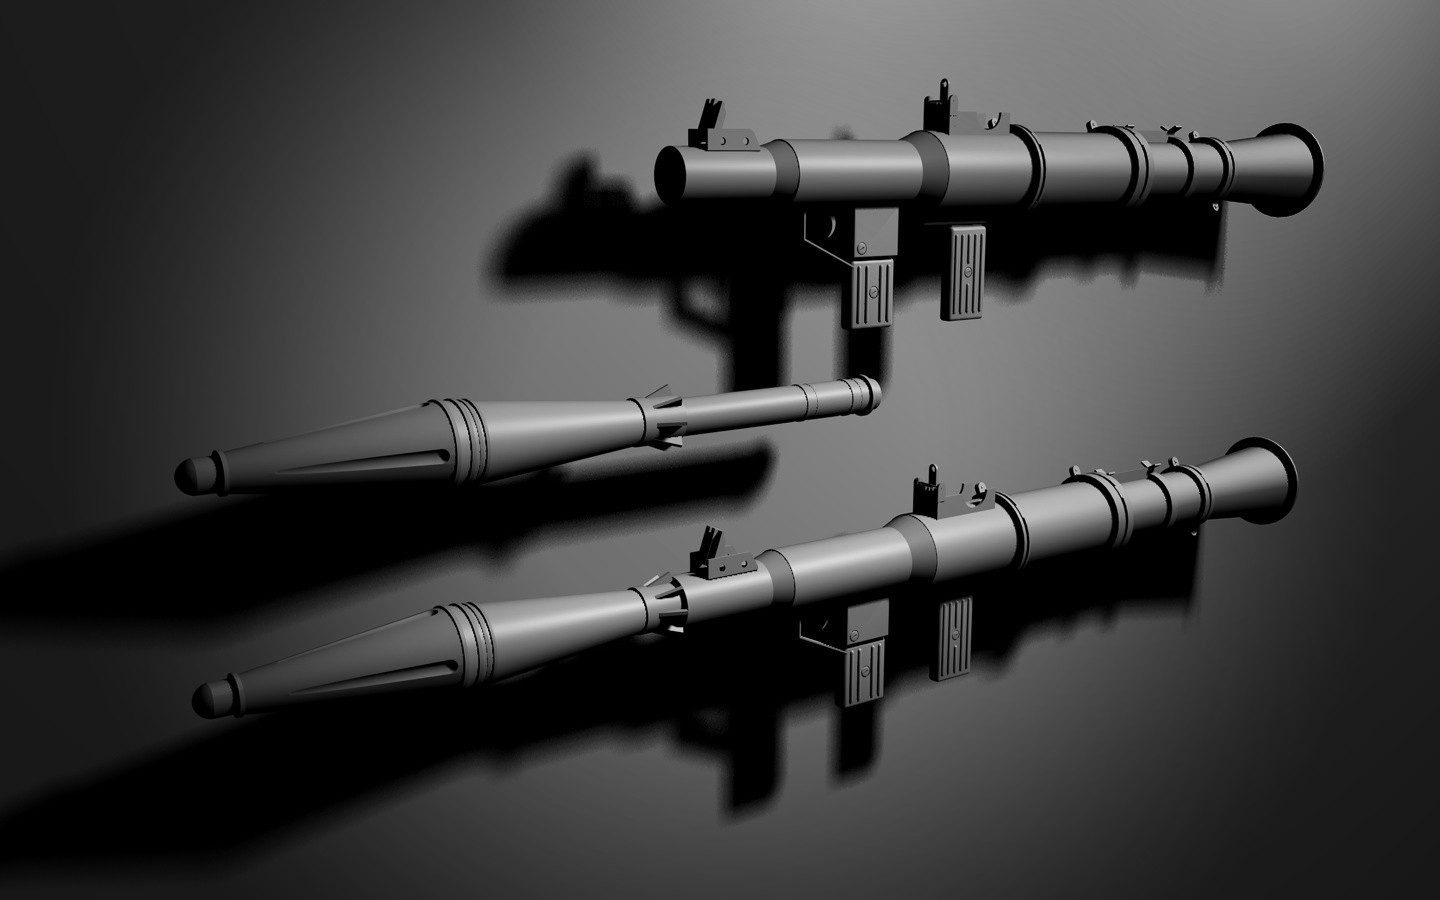 RPG weapons anti tank HD Wallpaper